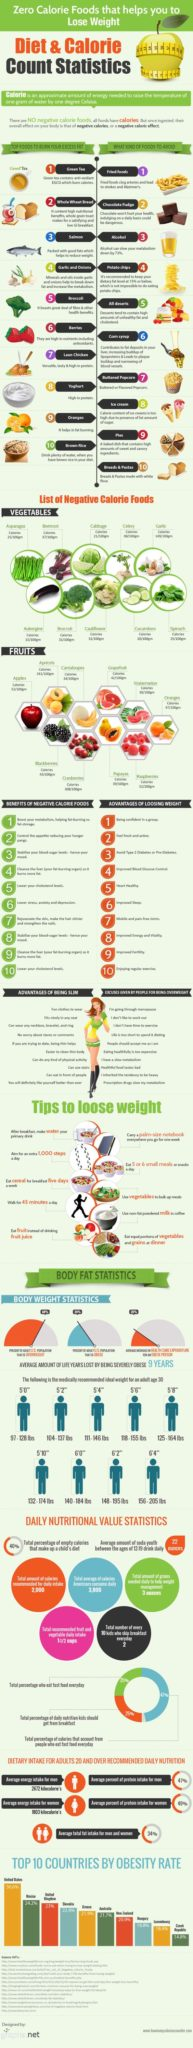 List Of Foods That Are Proven To Help You Lose Weight (Including Negative Calorie Foods)